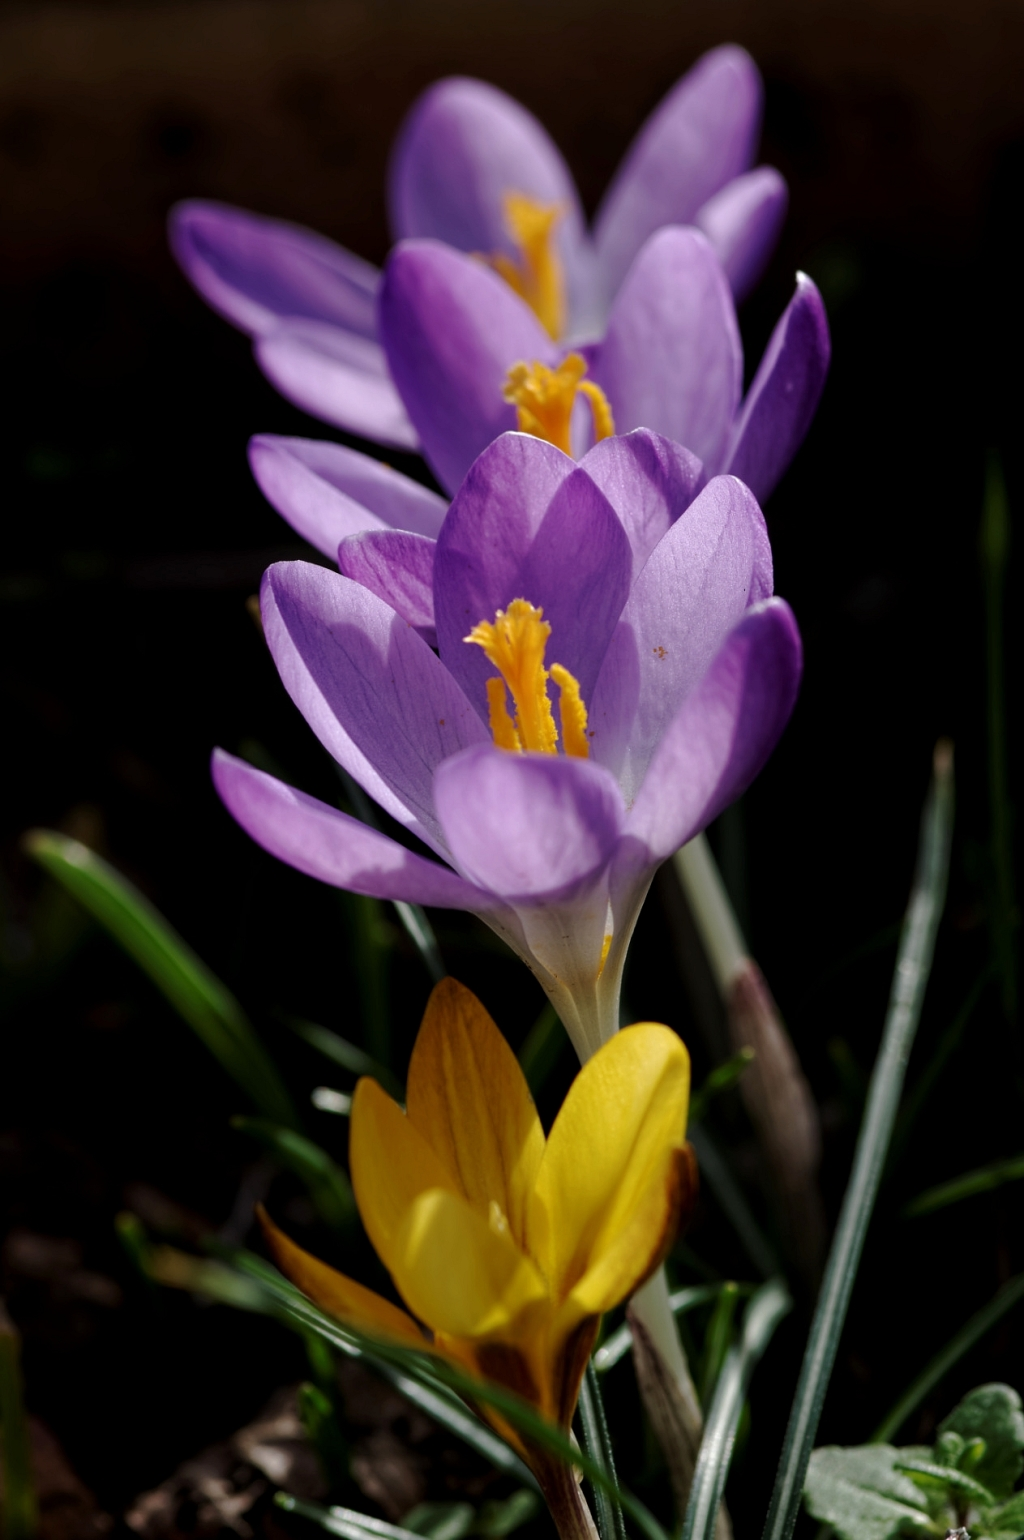 smc PENTAX D-FA MACRO 100mm f/2.8 WR, crocus, plante bulbeuse, violet, jaune, fleur, photo,